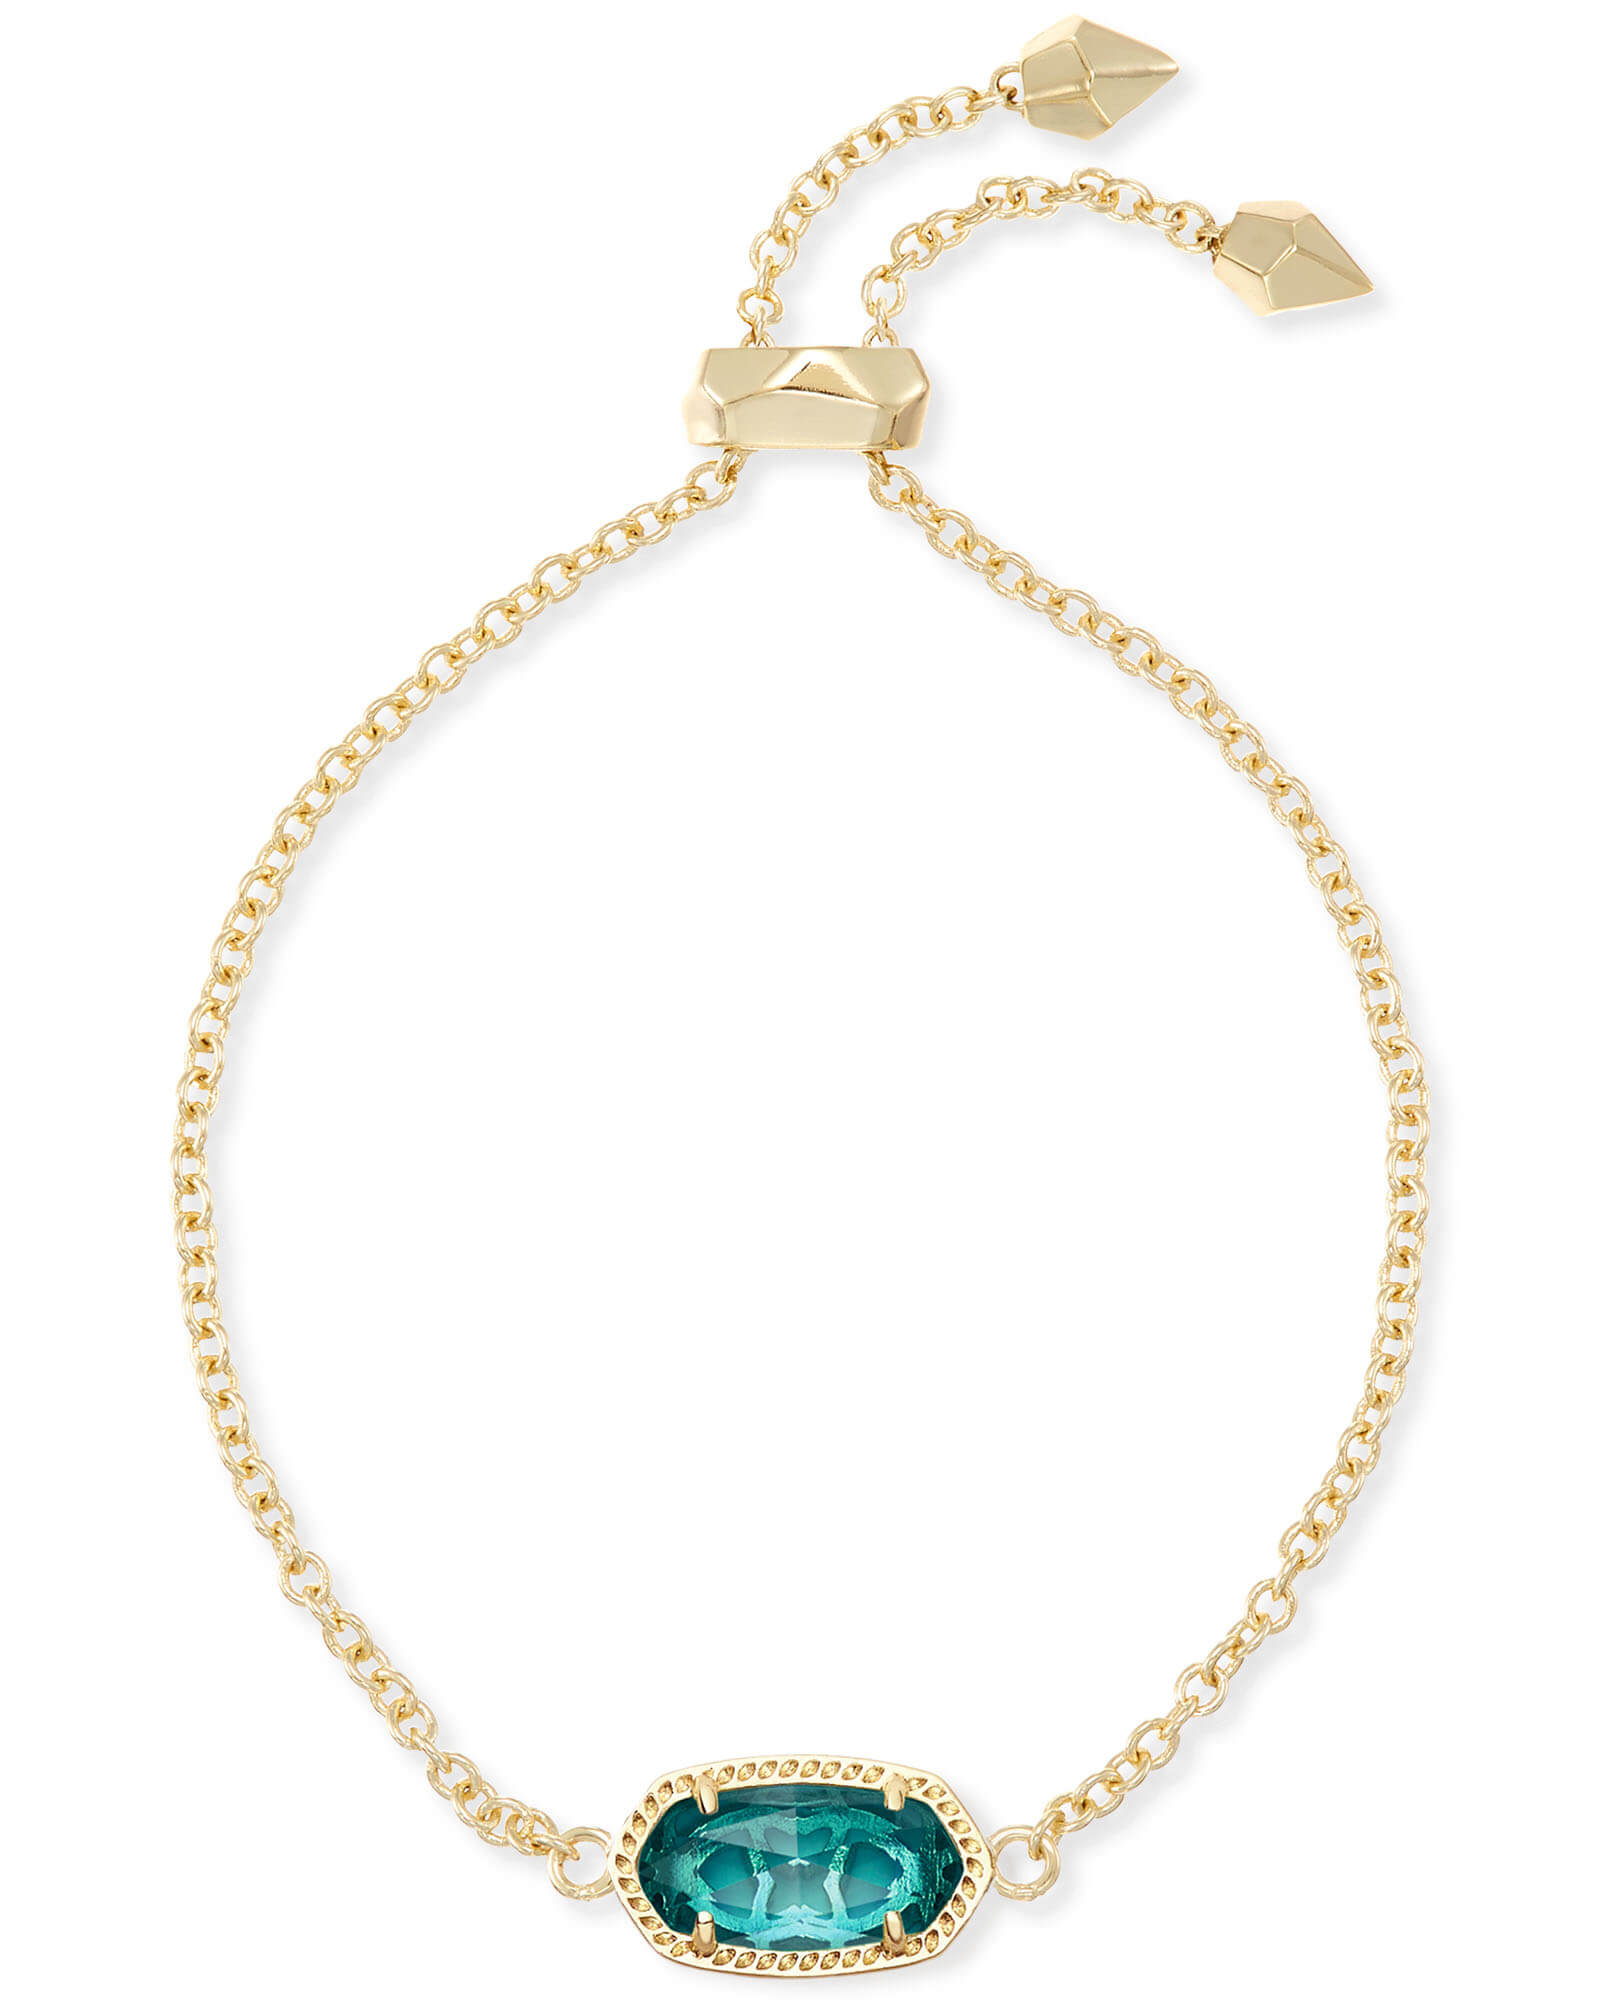 Elaina Gold Adjustable Bracelet In Blue | Kendra Scott With Regard To Current London Blue Crystal December Droplet Pendant Necklaces (View 18 of 25)